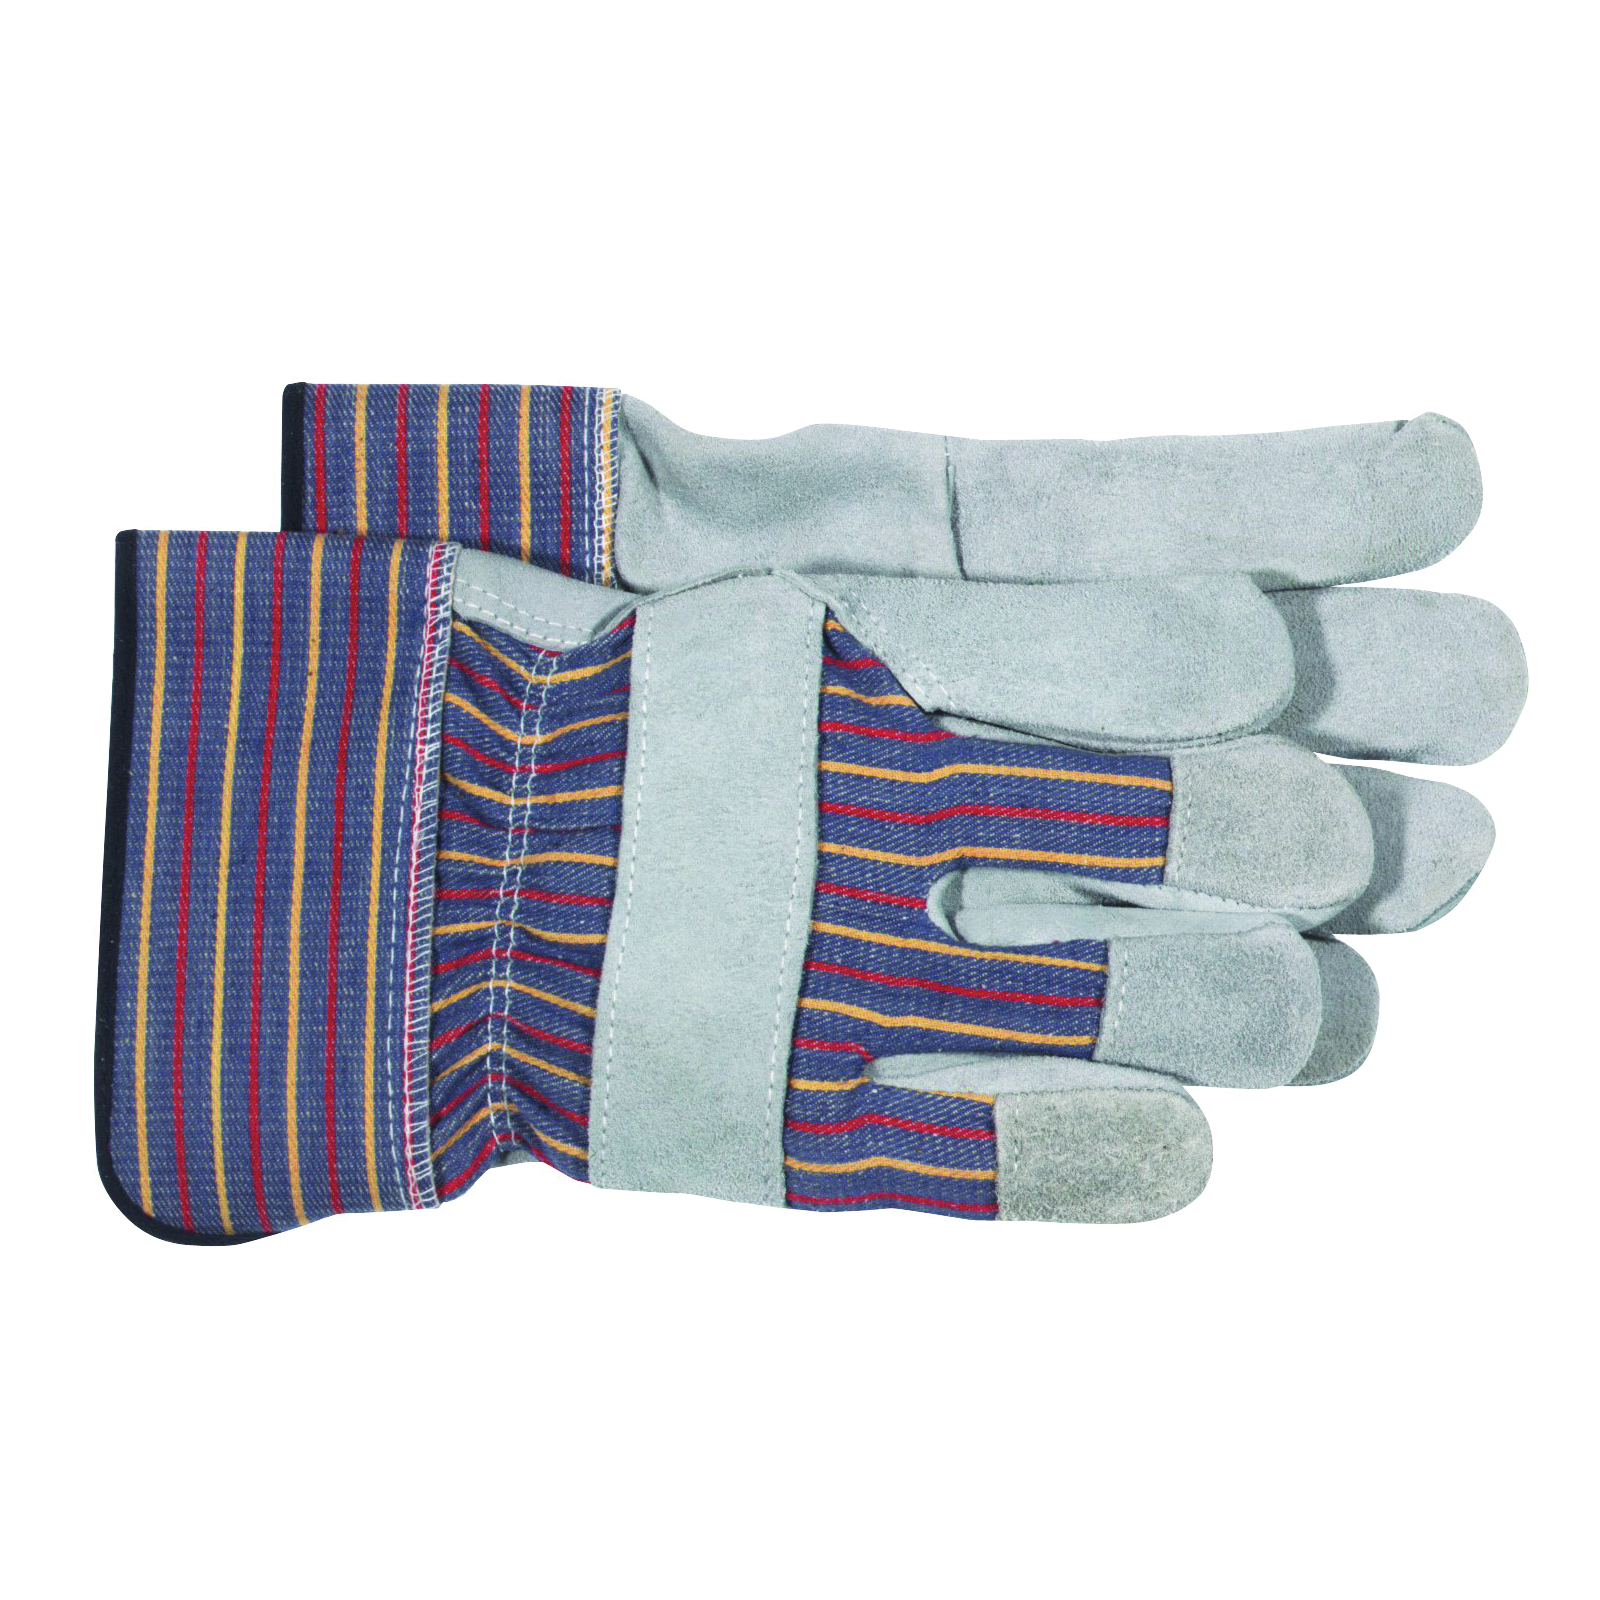 Picture of BOSS 4094 Welder Gloves, Men's, L, Wing Thumb, Rubberized Safety Cuff, Blue/Gray